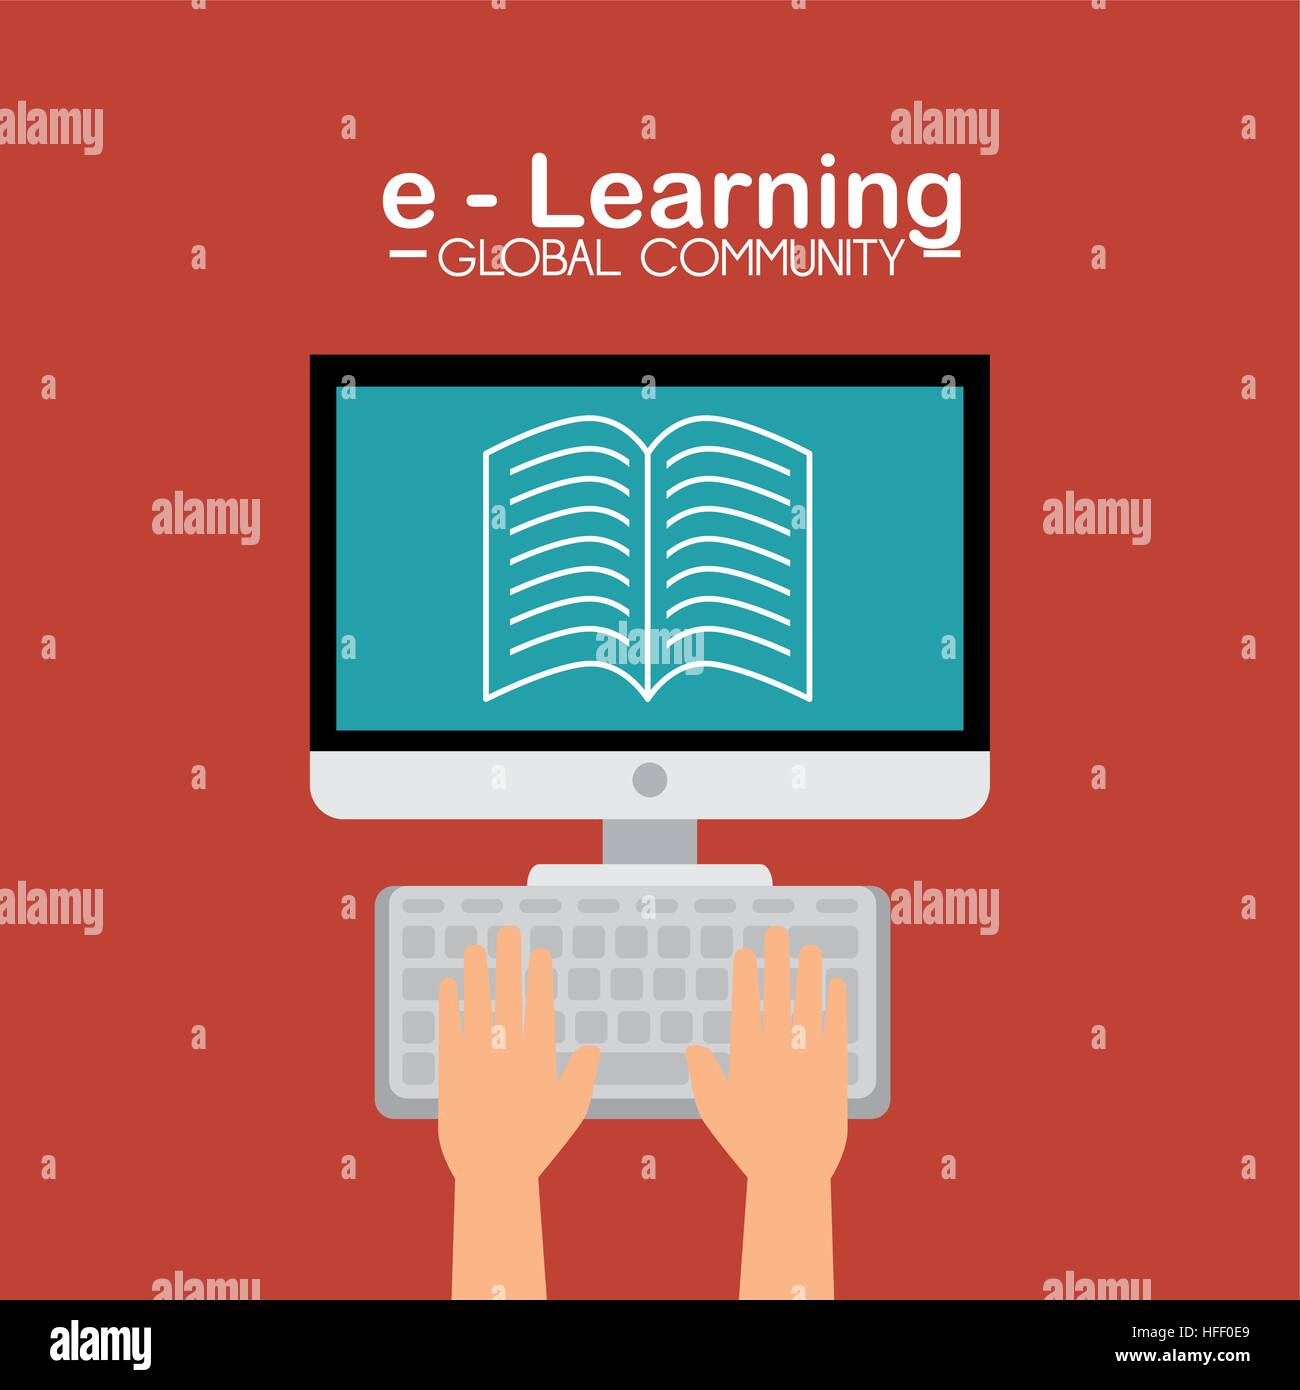 E learning poster designs - Stock Vector E Learning Global Community Concept Vector Illustration Design